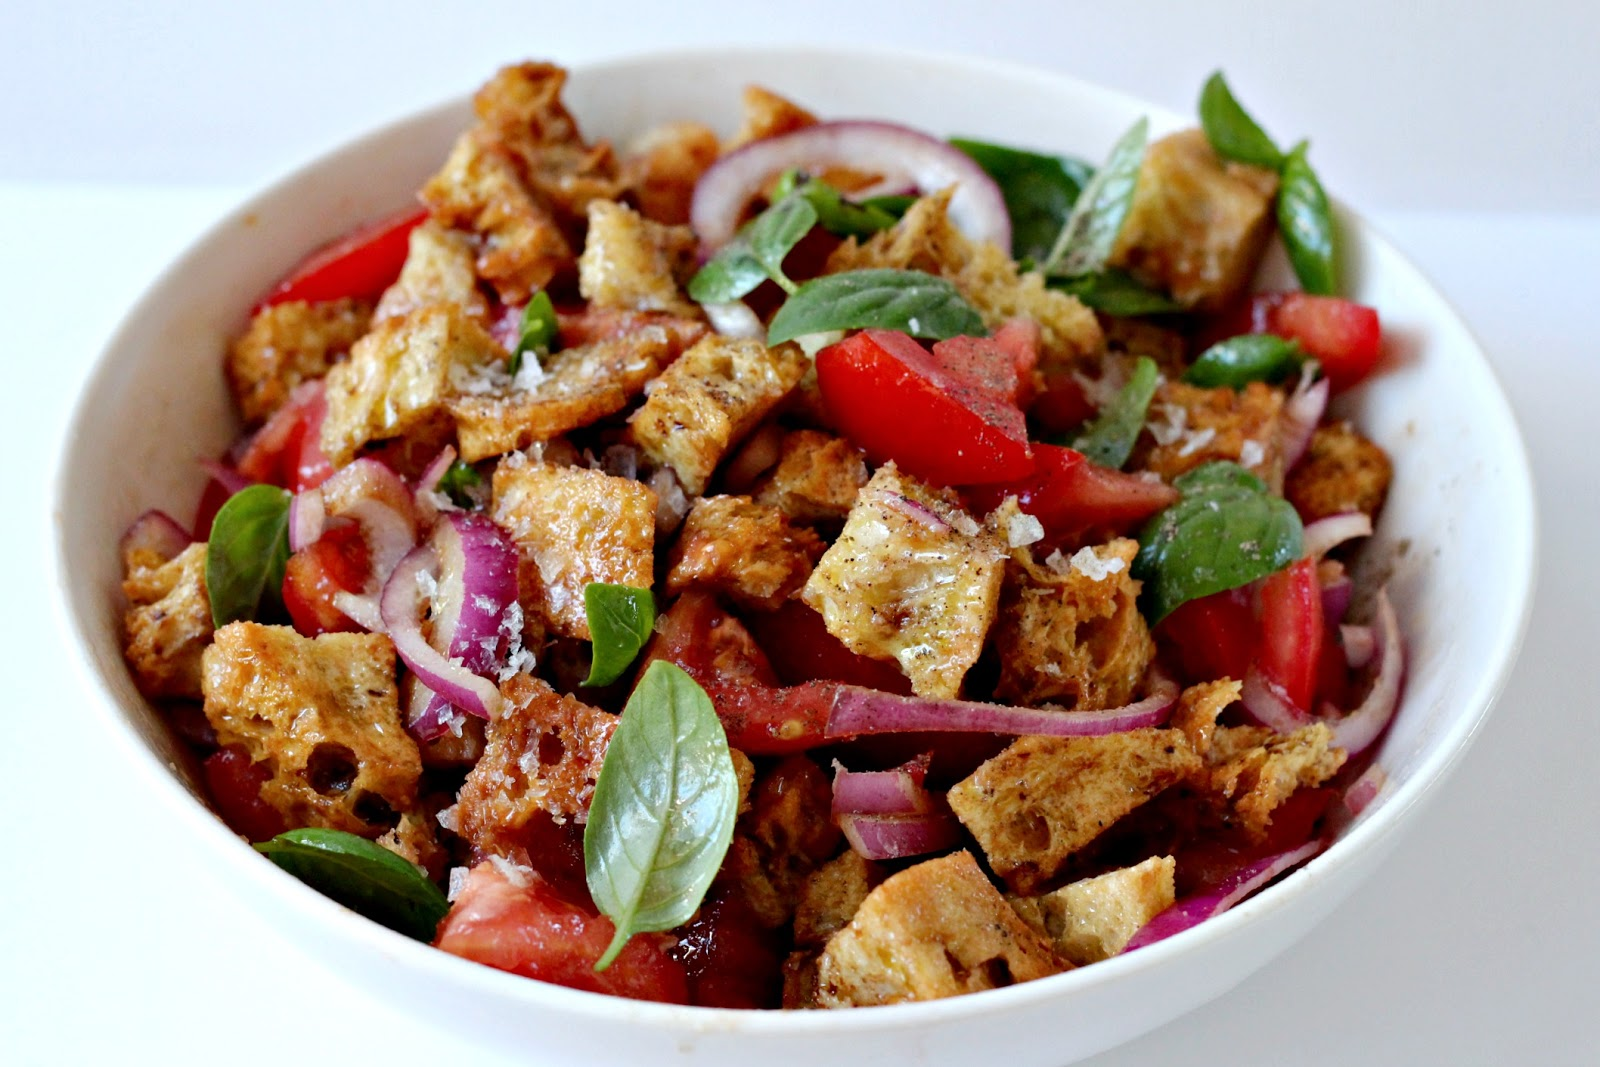 ... By Course Salad Salads - Other Panzanella Panzanella (Bread Salad